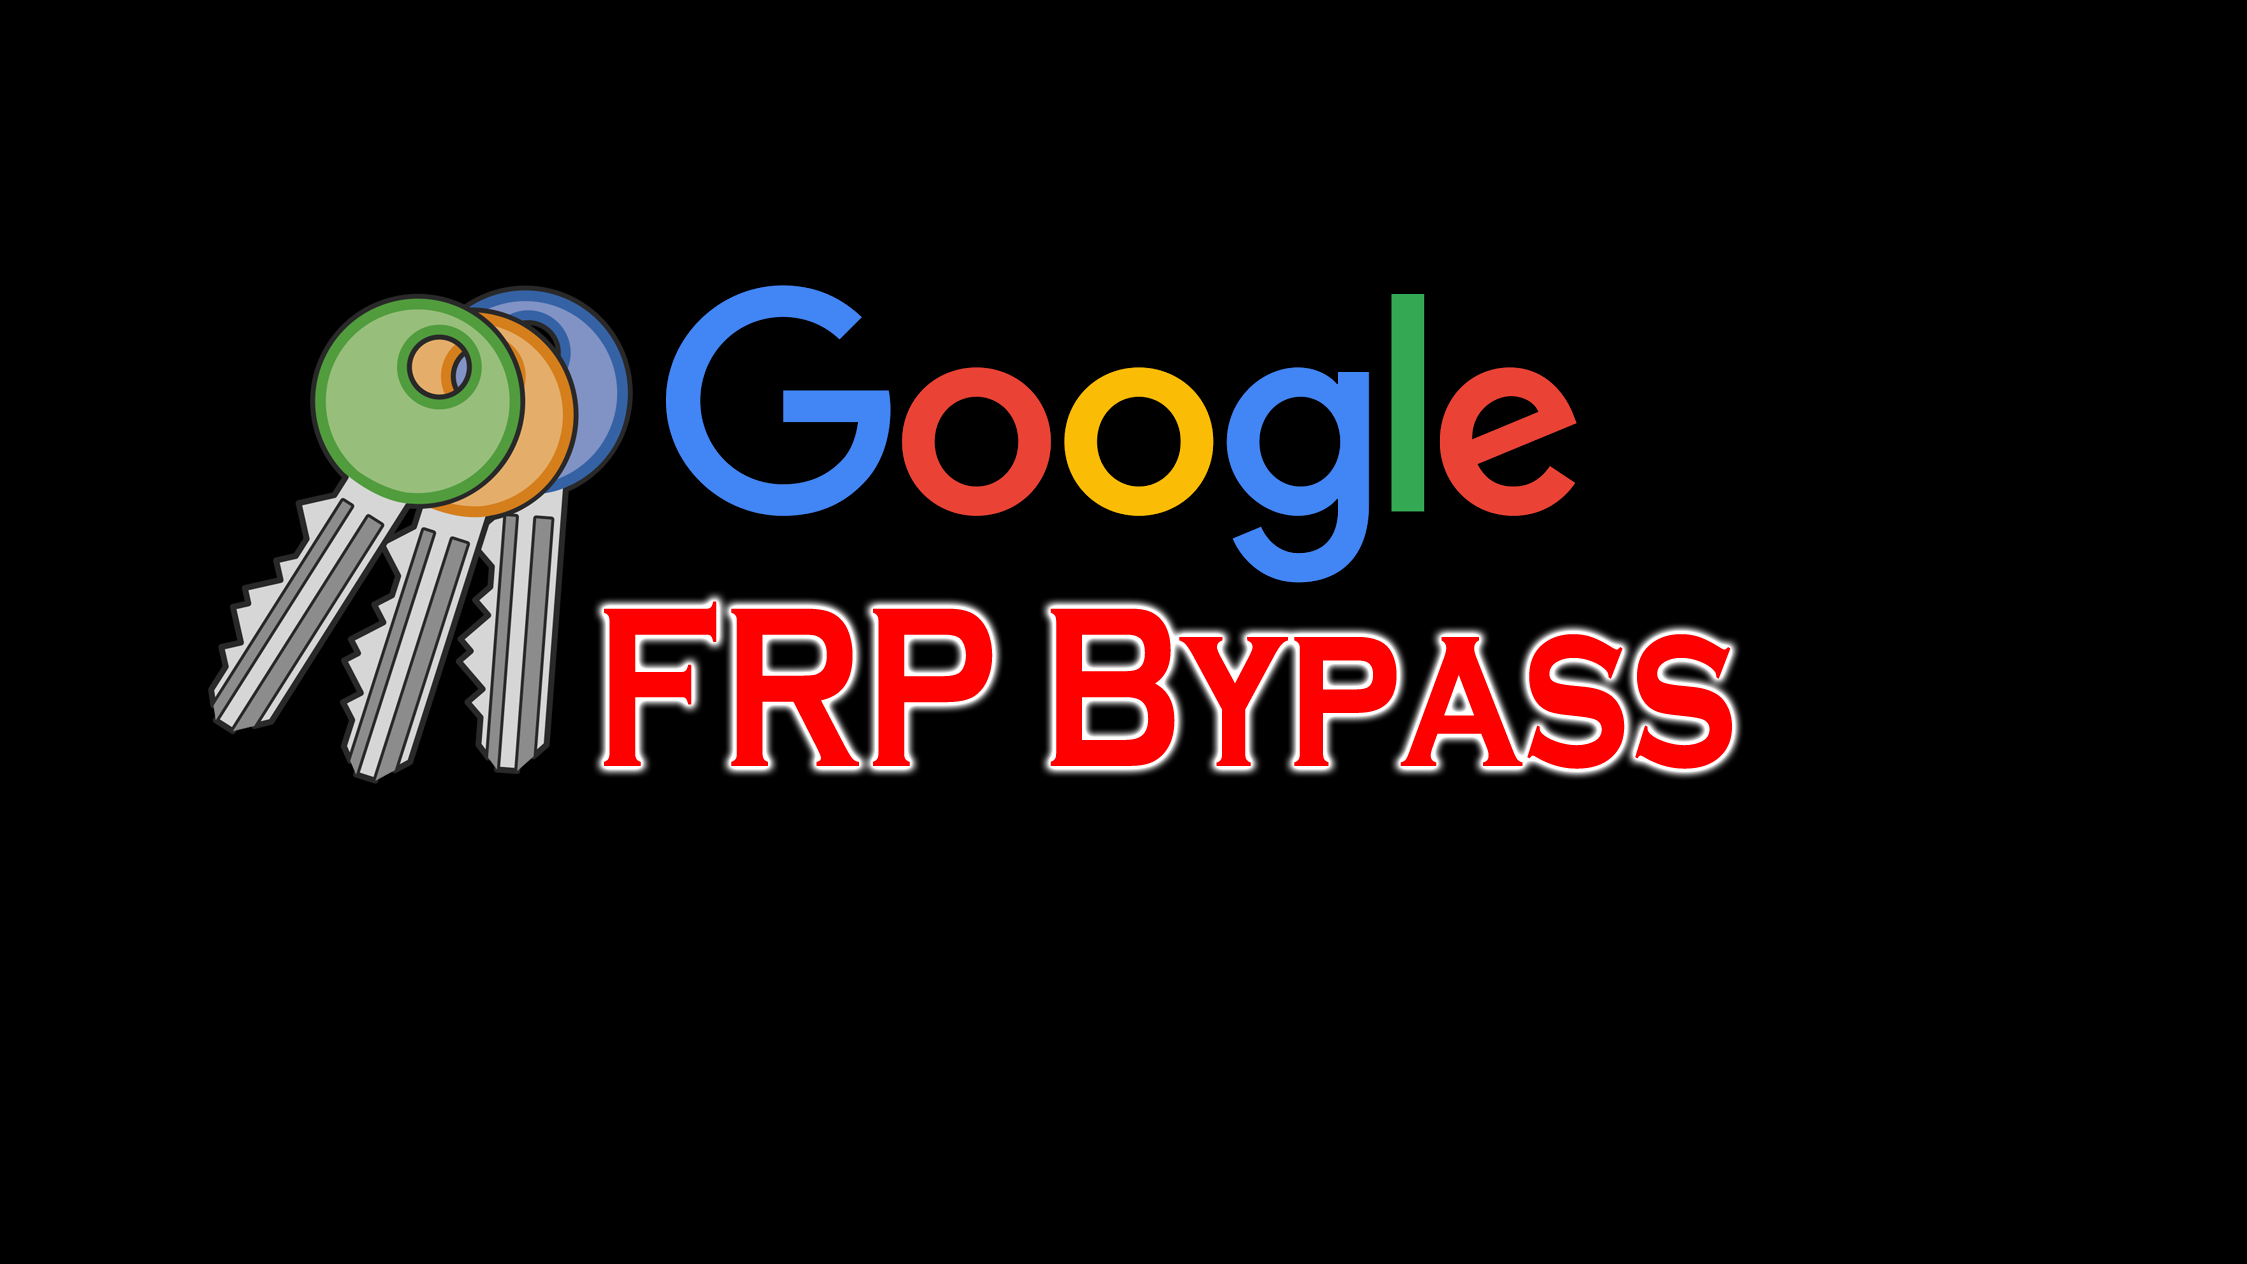 FRP Bypass new security without OTG | Ministry Of Solutions